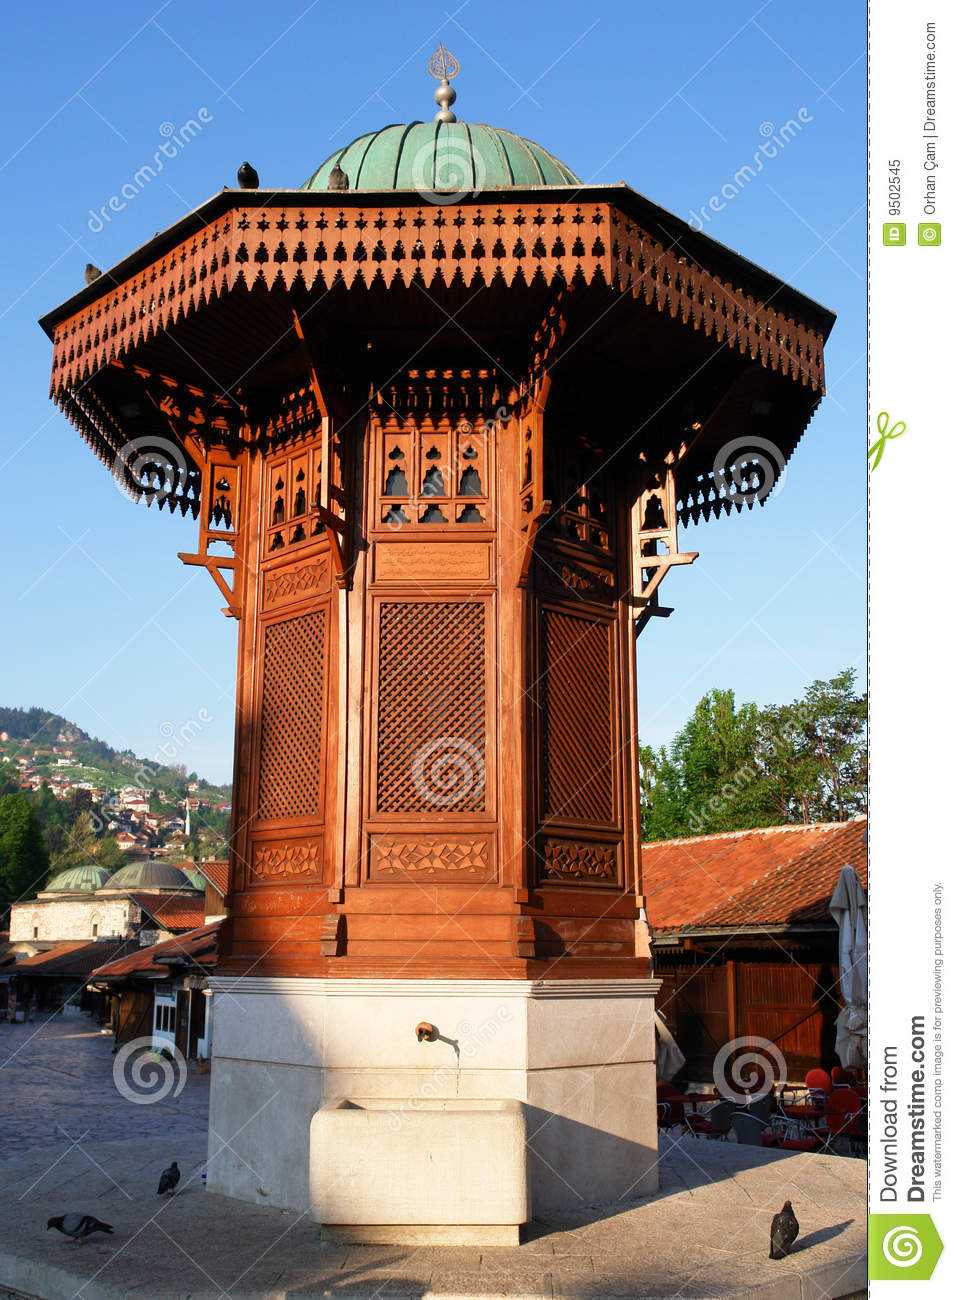 historischer fount in sarajevo bosnien herzegowina lizenzfreies stockfoto bild 9502545. Black Bedroom Furniture Sets. Home Design Ideas